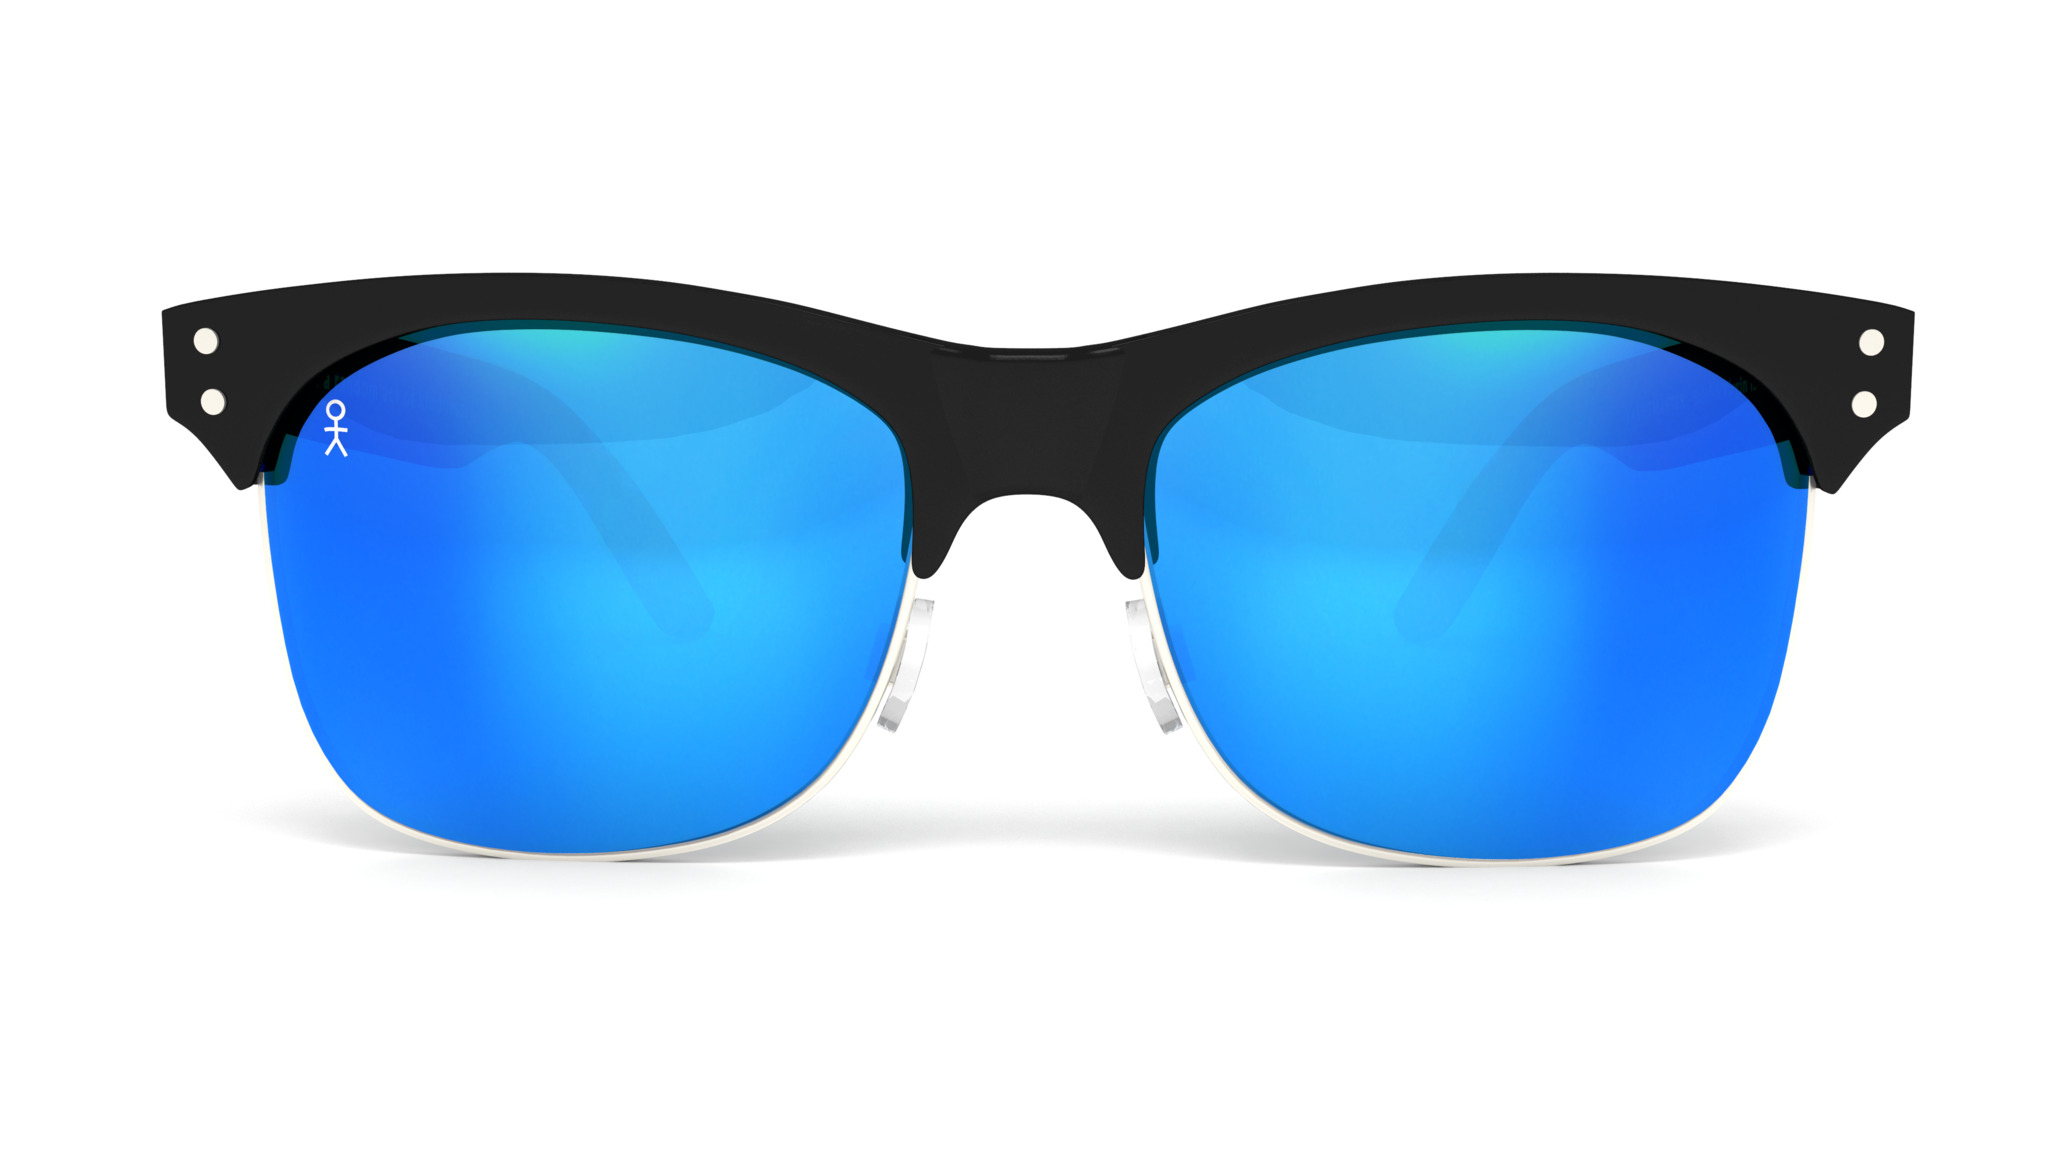 Sunglasses PNG - 22888